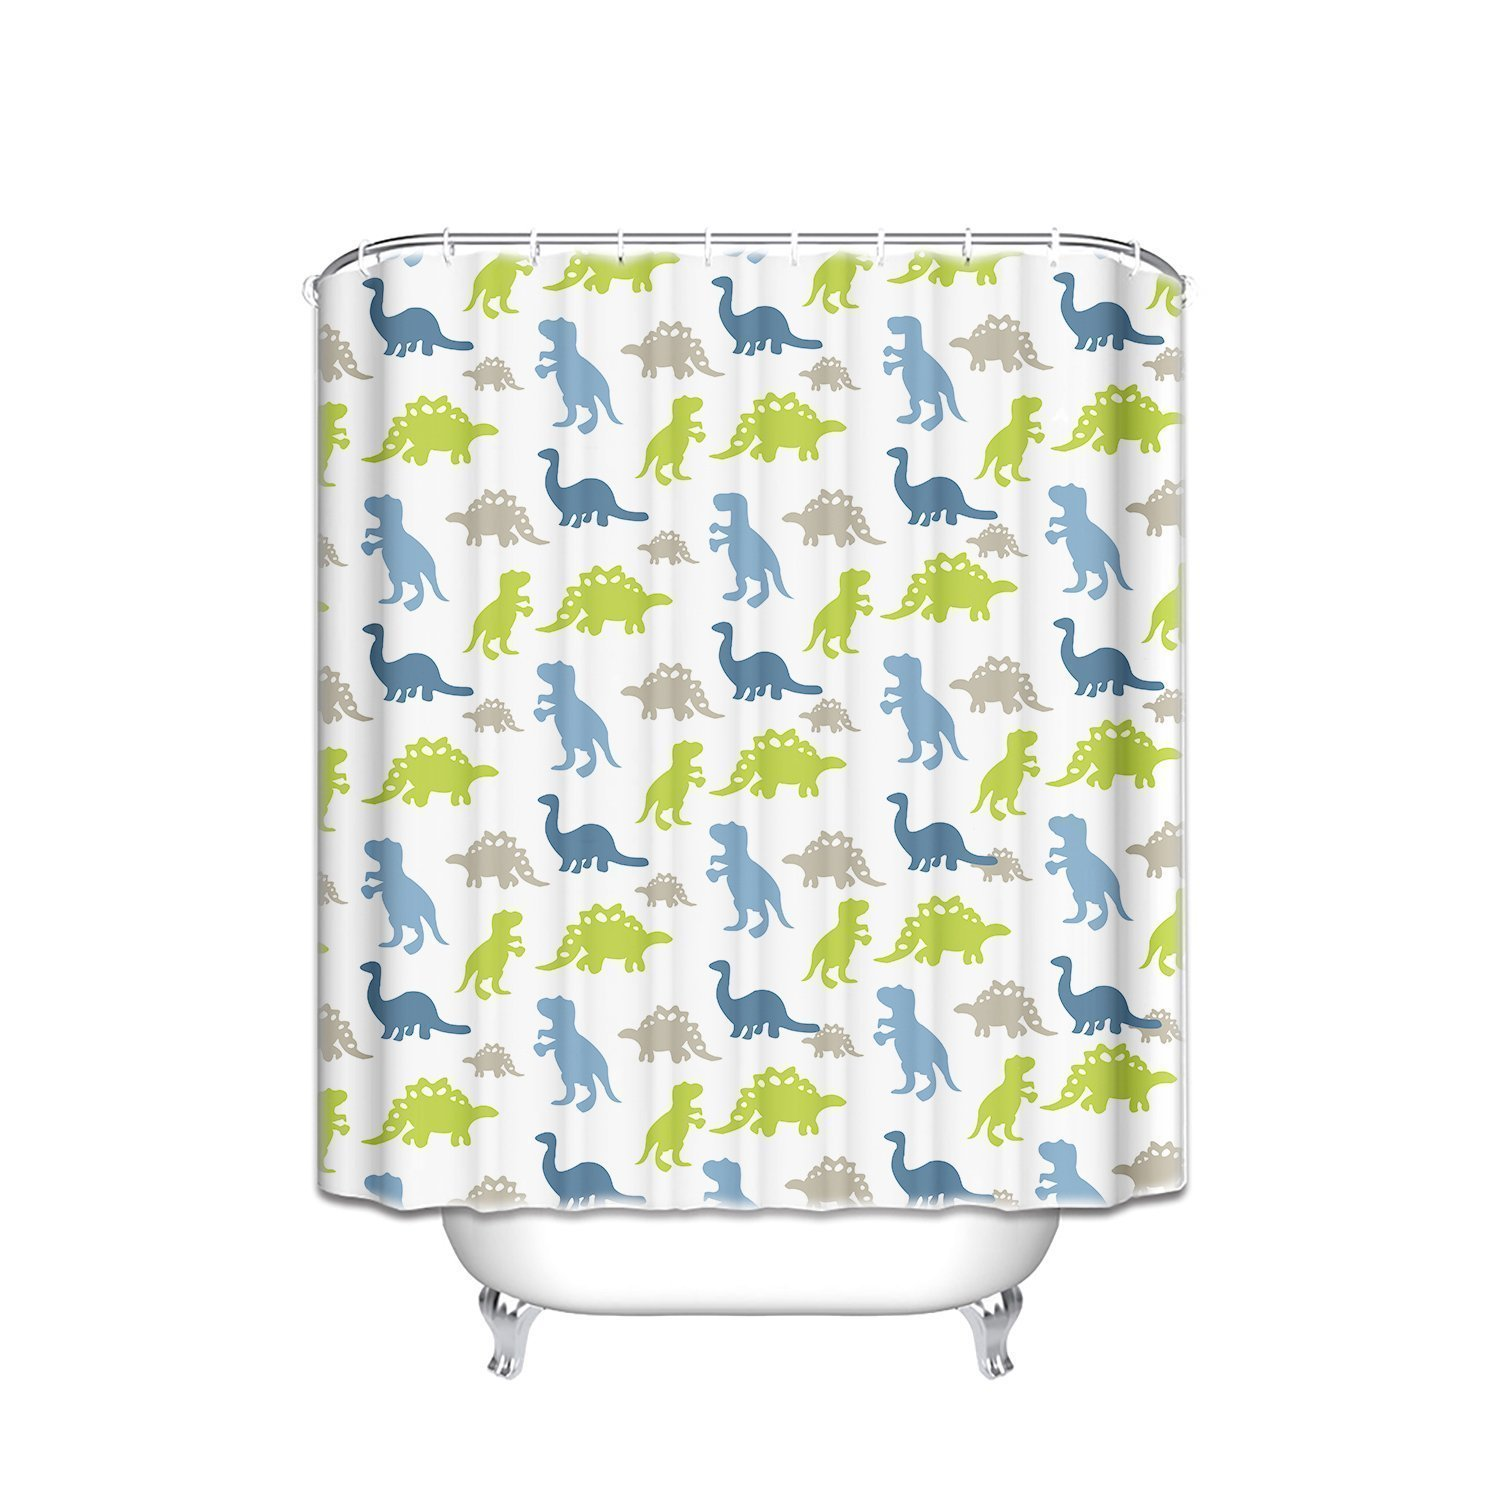 Fabric Shower Curtain Dino Park Dinosaur Design Children's Bathroom Decor Mildew Resistant Polyester Fabric Bathroom Set with Hooks,Animal Home Decor,36 x 72